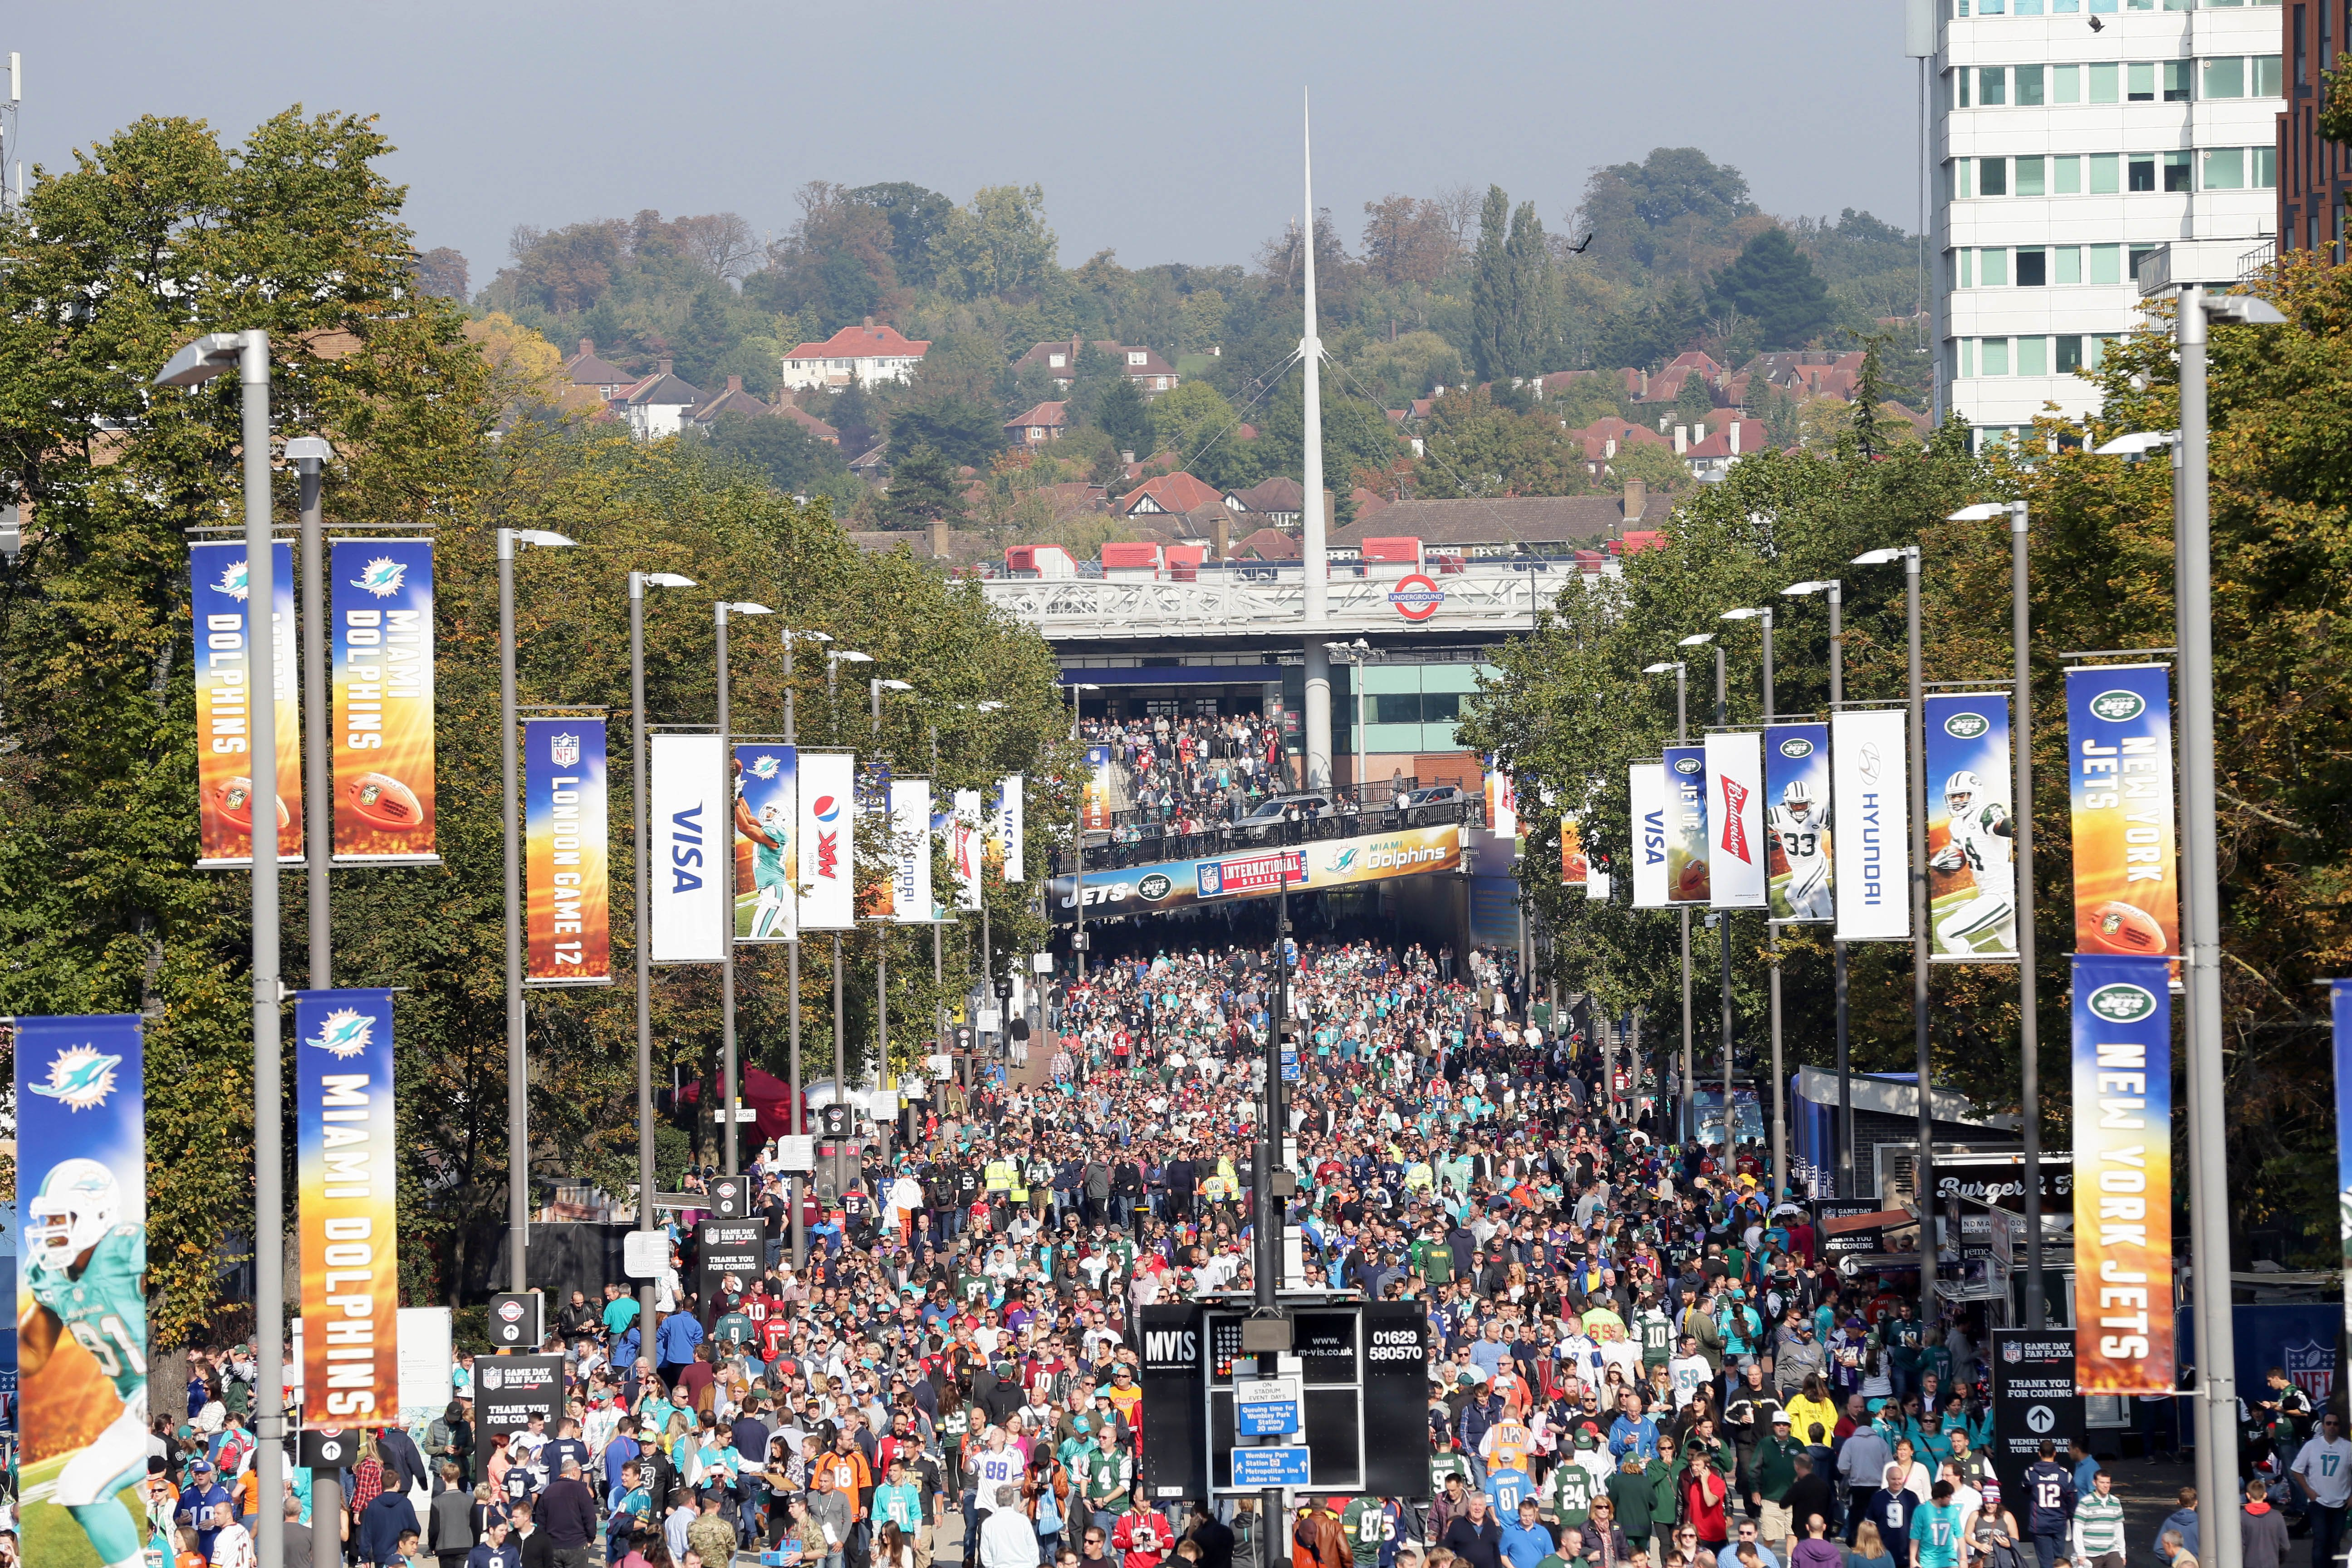 Spectators line Wembley Way as they arrive for the NFL football game between the New York Jets and the Miami Dolphins and at Wembley stadium in London, Sunday, Oct. 4, 2015. (AP Photo/Tim Ireland)